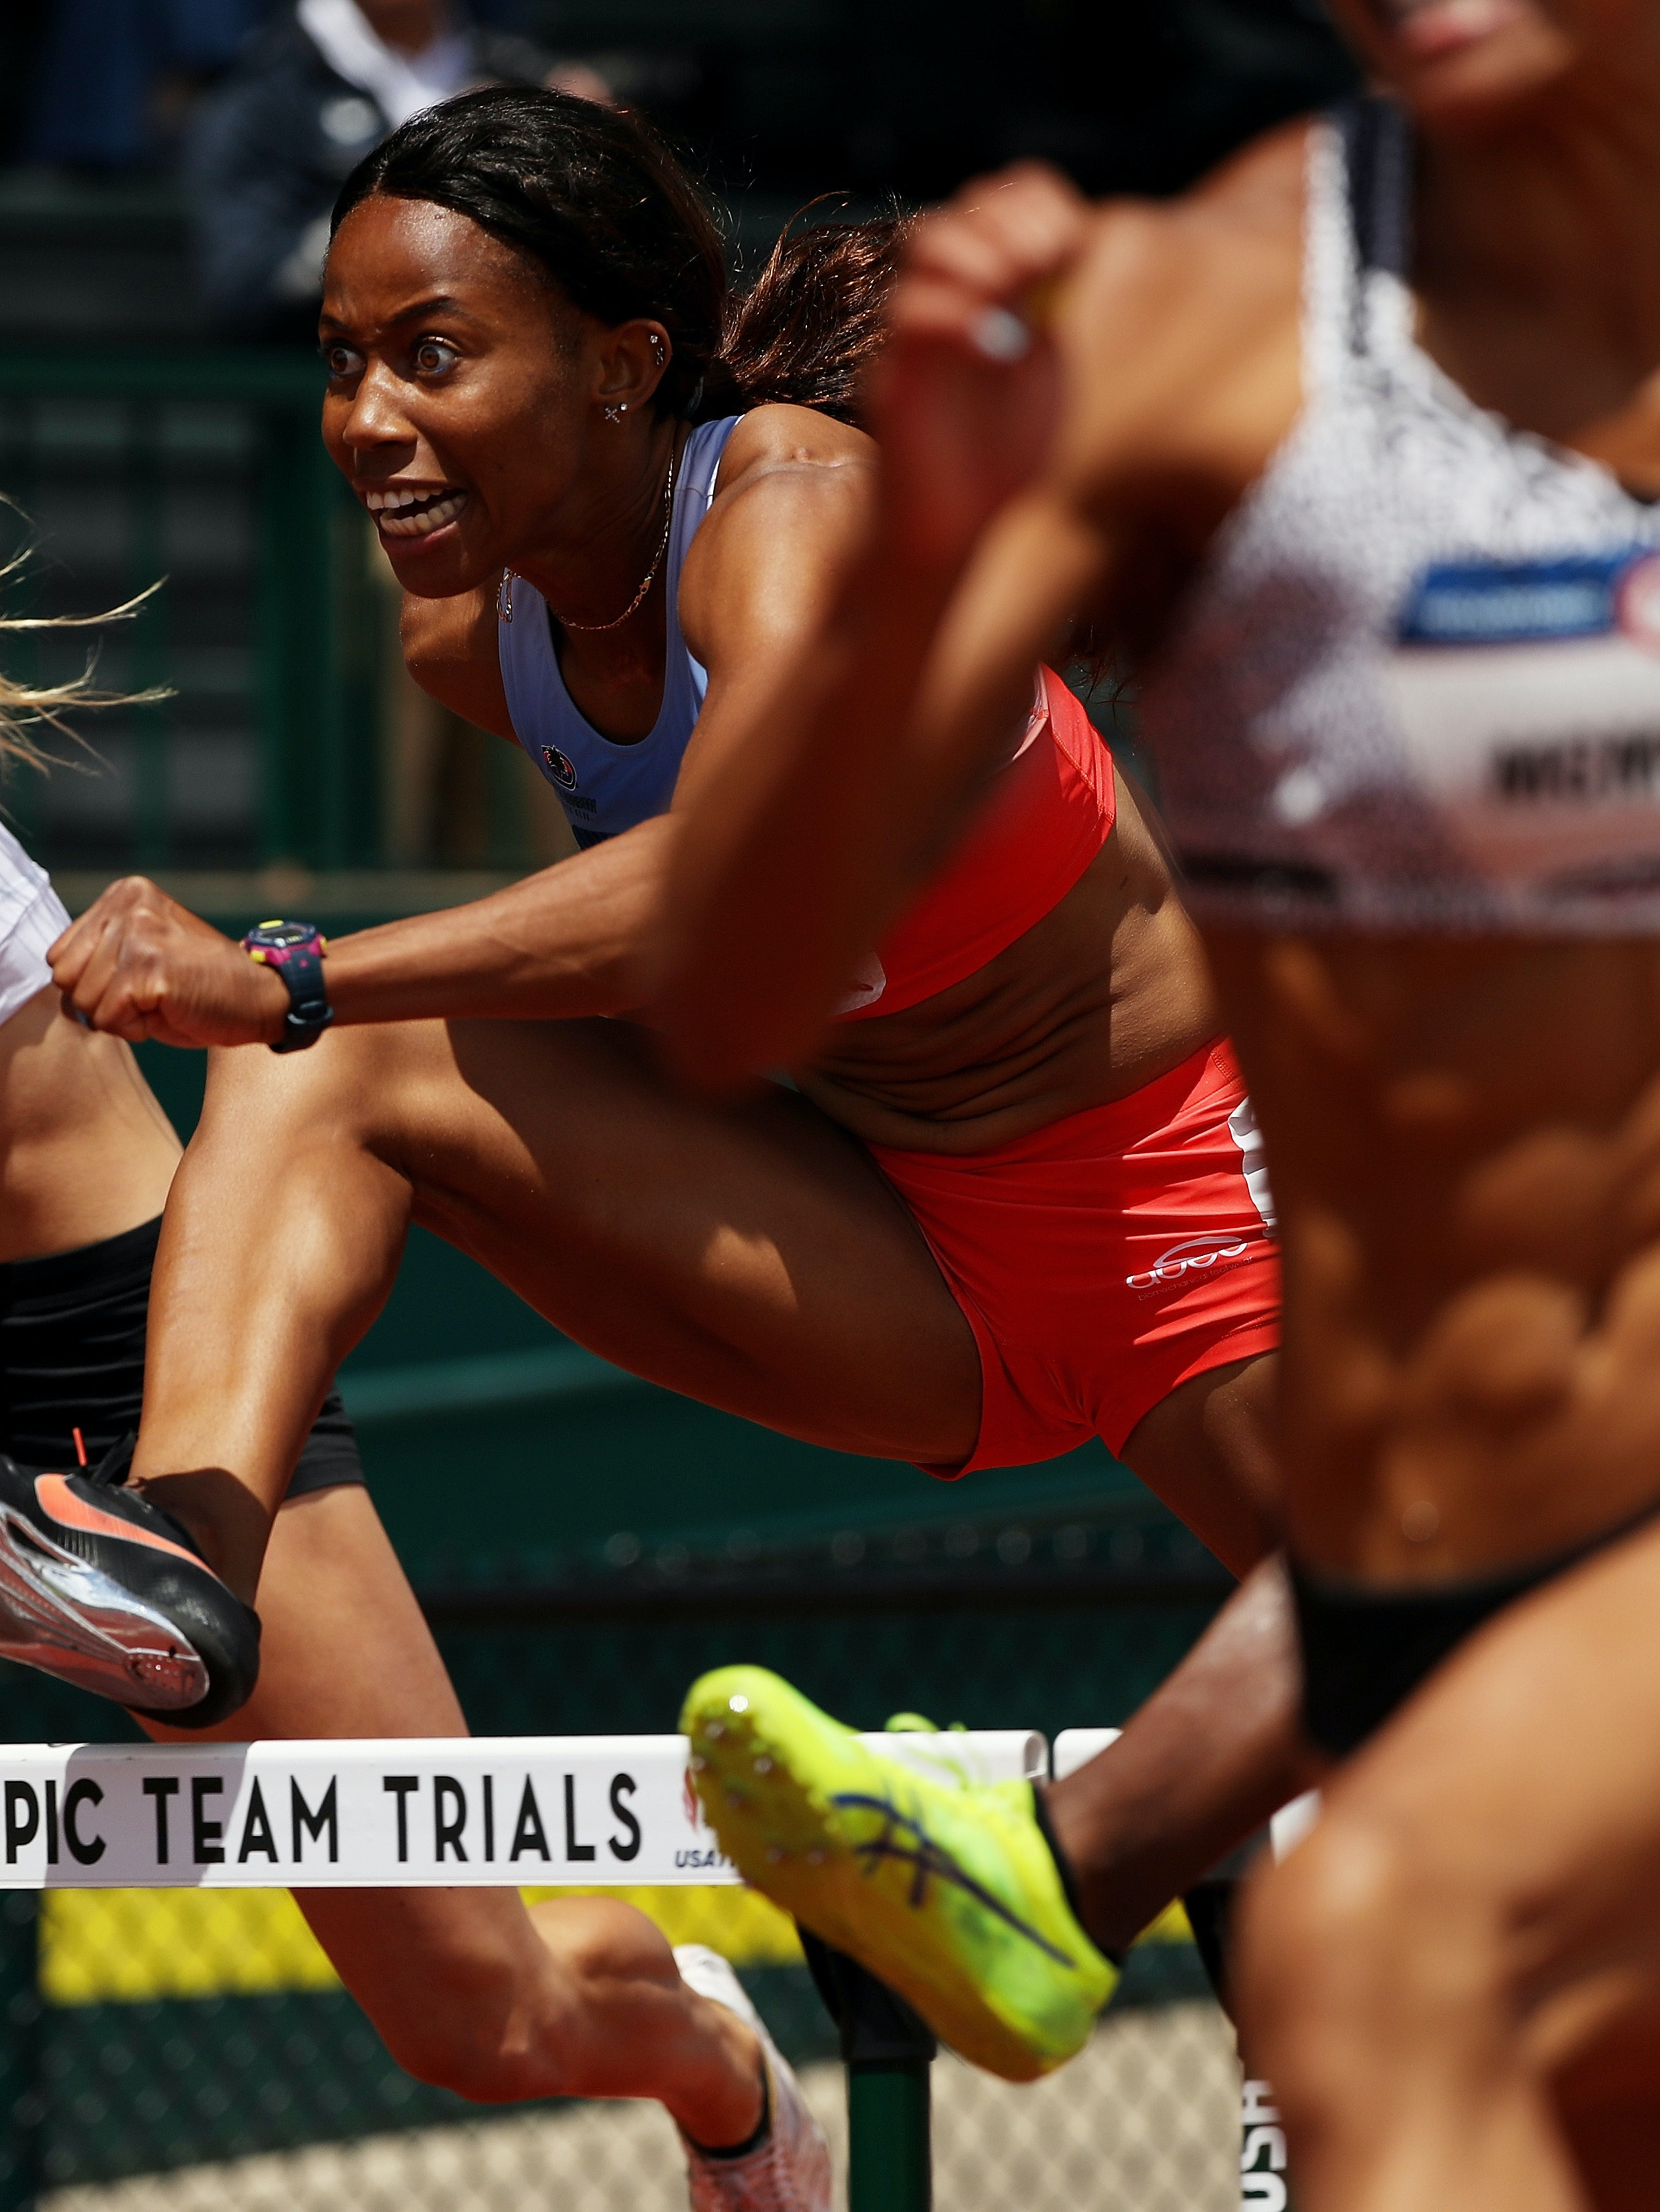 EUGENE, OR - JULY 09:  Barbara Nwaba competes in the Women's Heptathlon 100 Meter Hurdles during the 2016 U.S. Olympic Track & Field Team Trials at Hayward Field on July 9, 2016 in Eugene, Oregon.  (Photo by Patrick Smith/Getty Images)